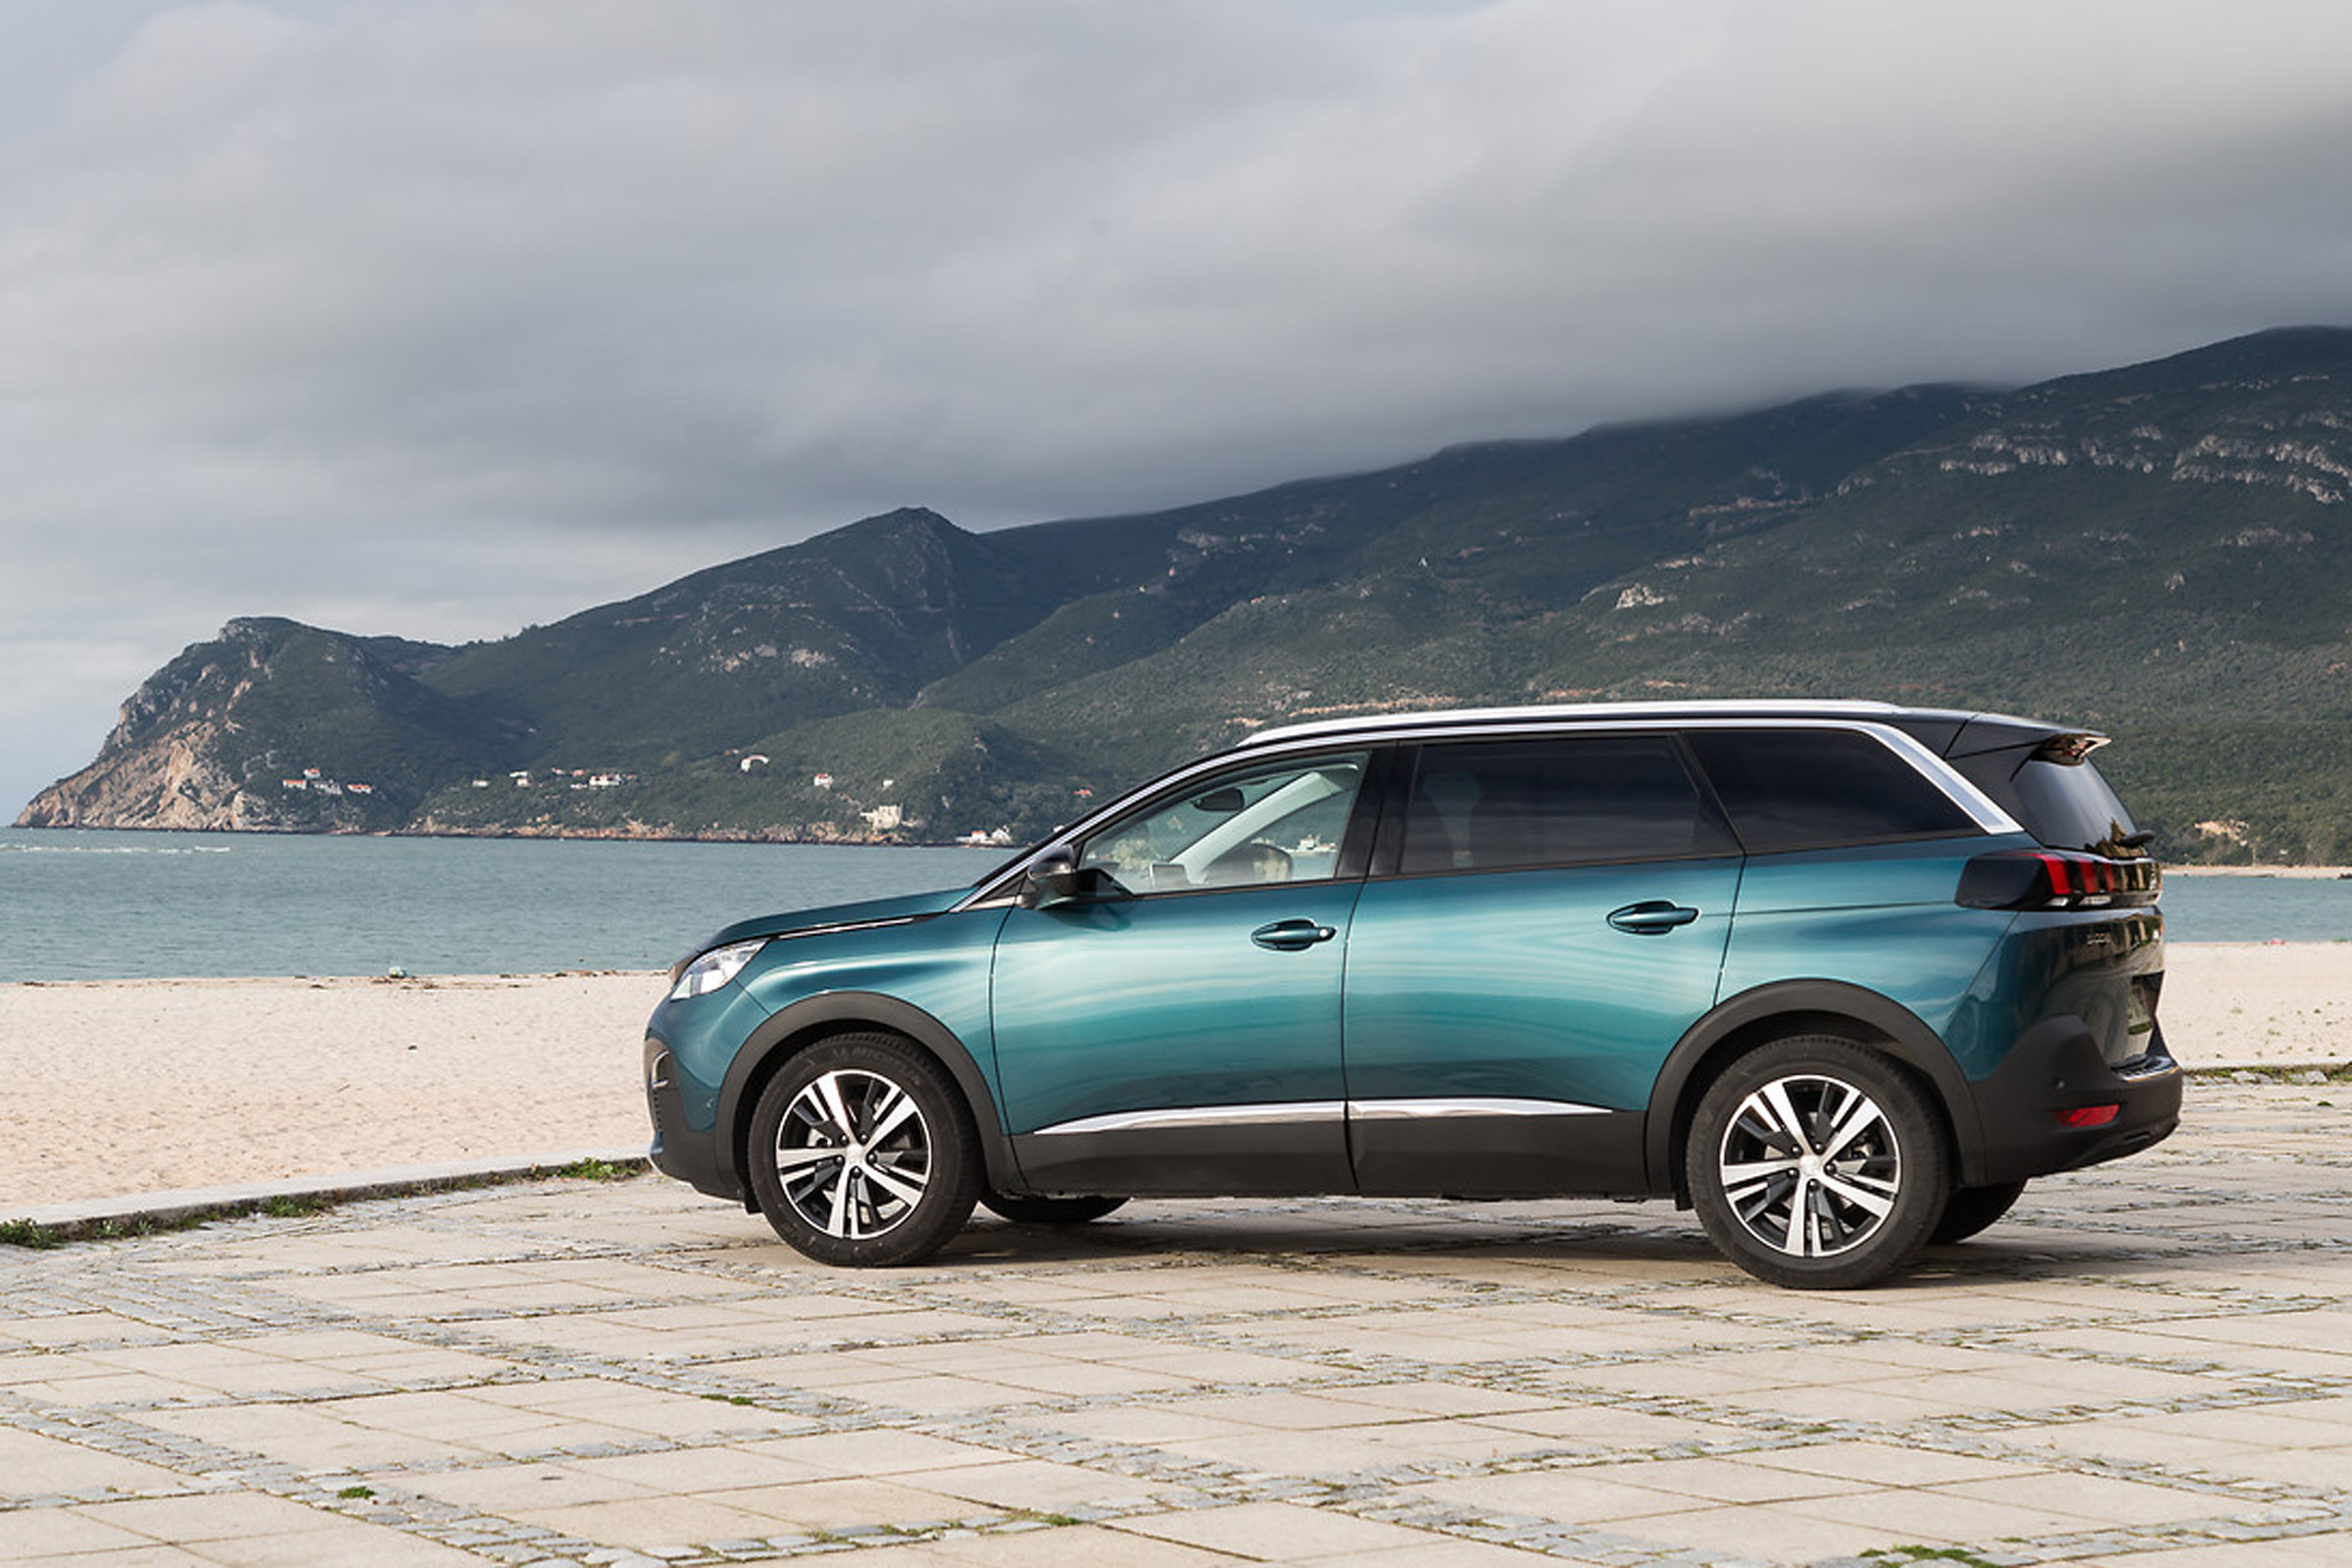 2017 Peugeot 5008 SUV Exterior Side (View 2 of 18)